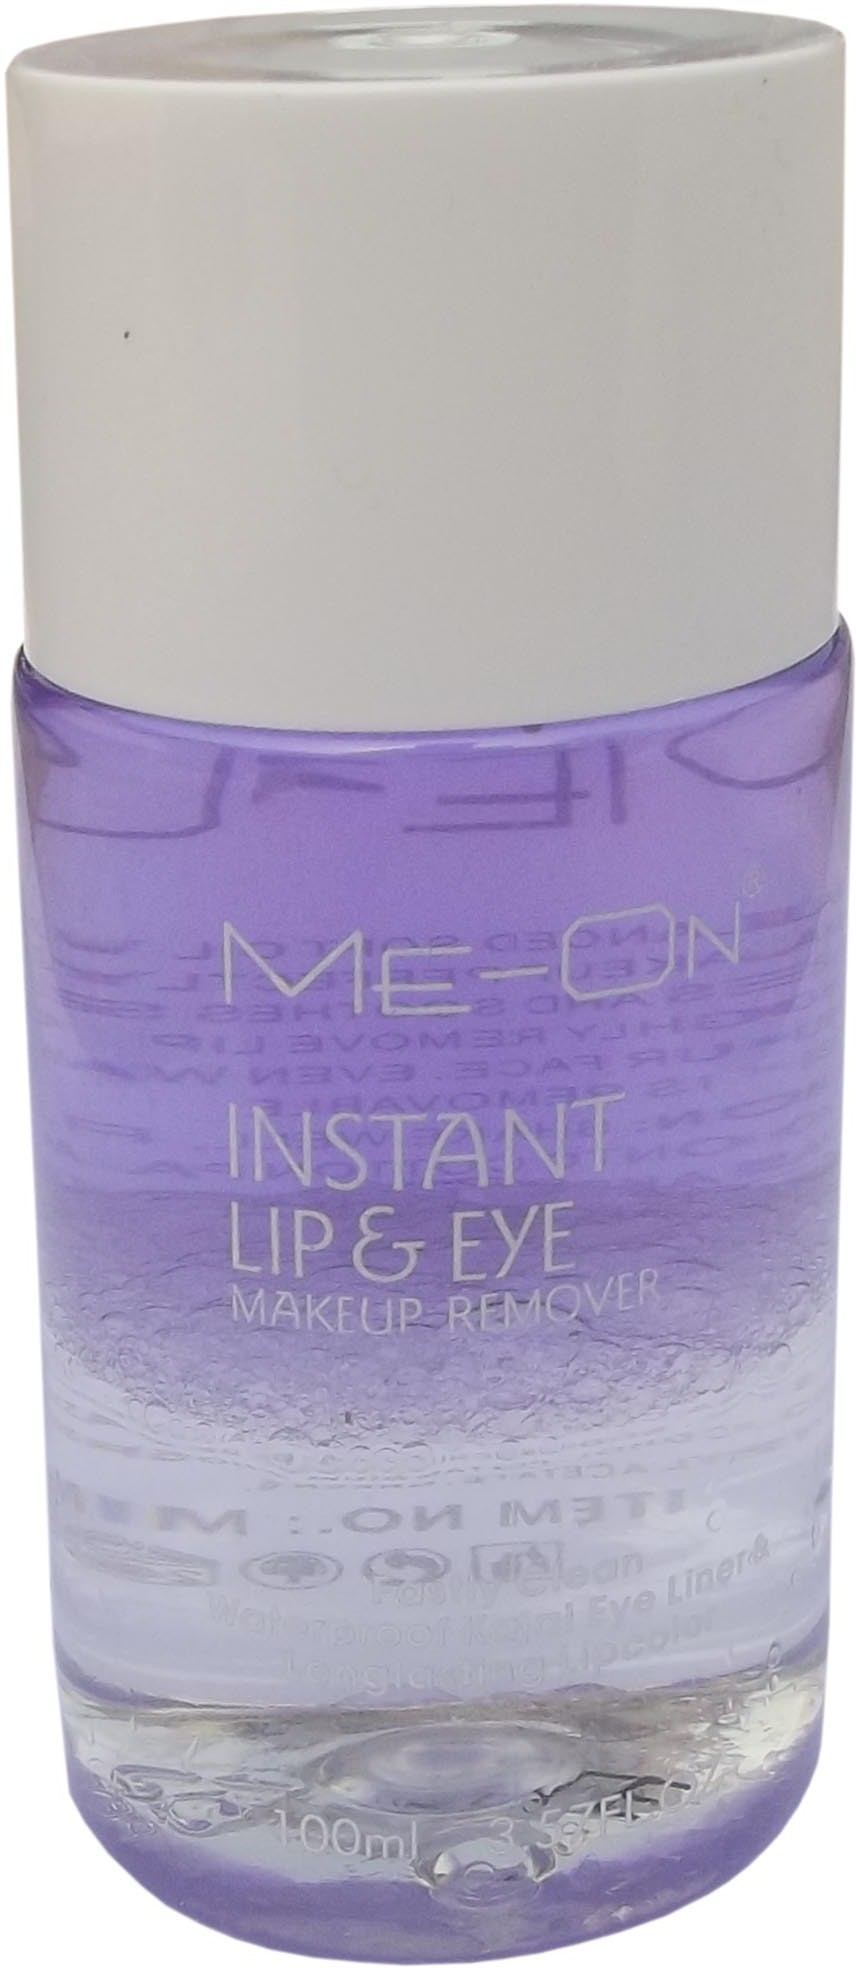 Makeup Removers Maybelline Eye Lip Remover 70 Ml Kascn Instant And Form Me On For All Age Of Womens